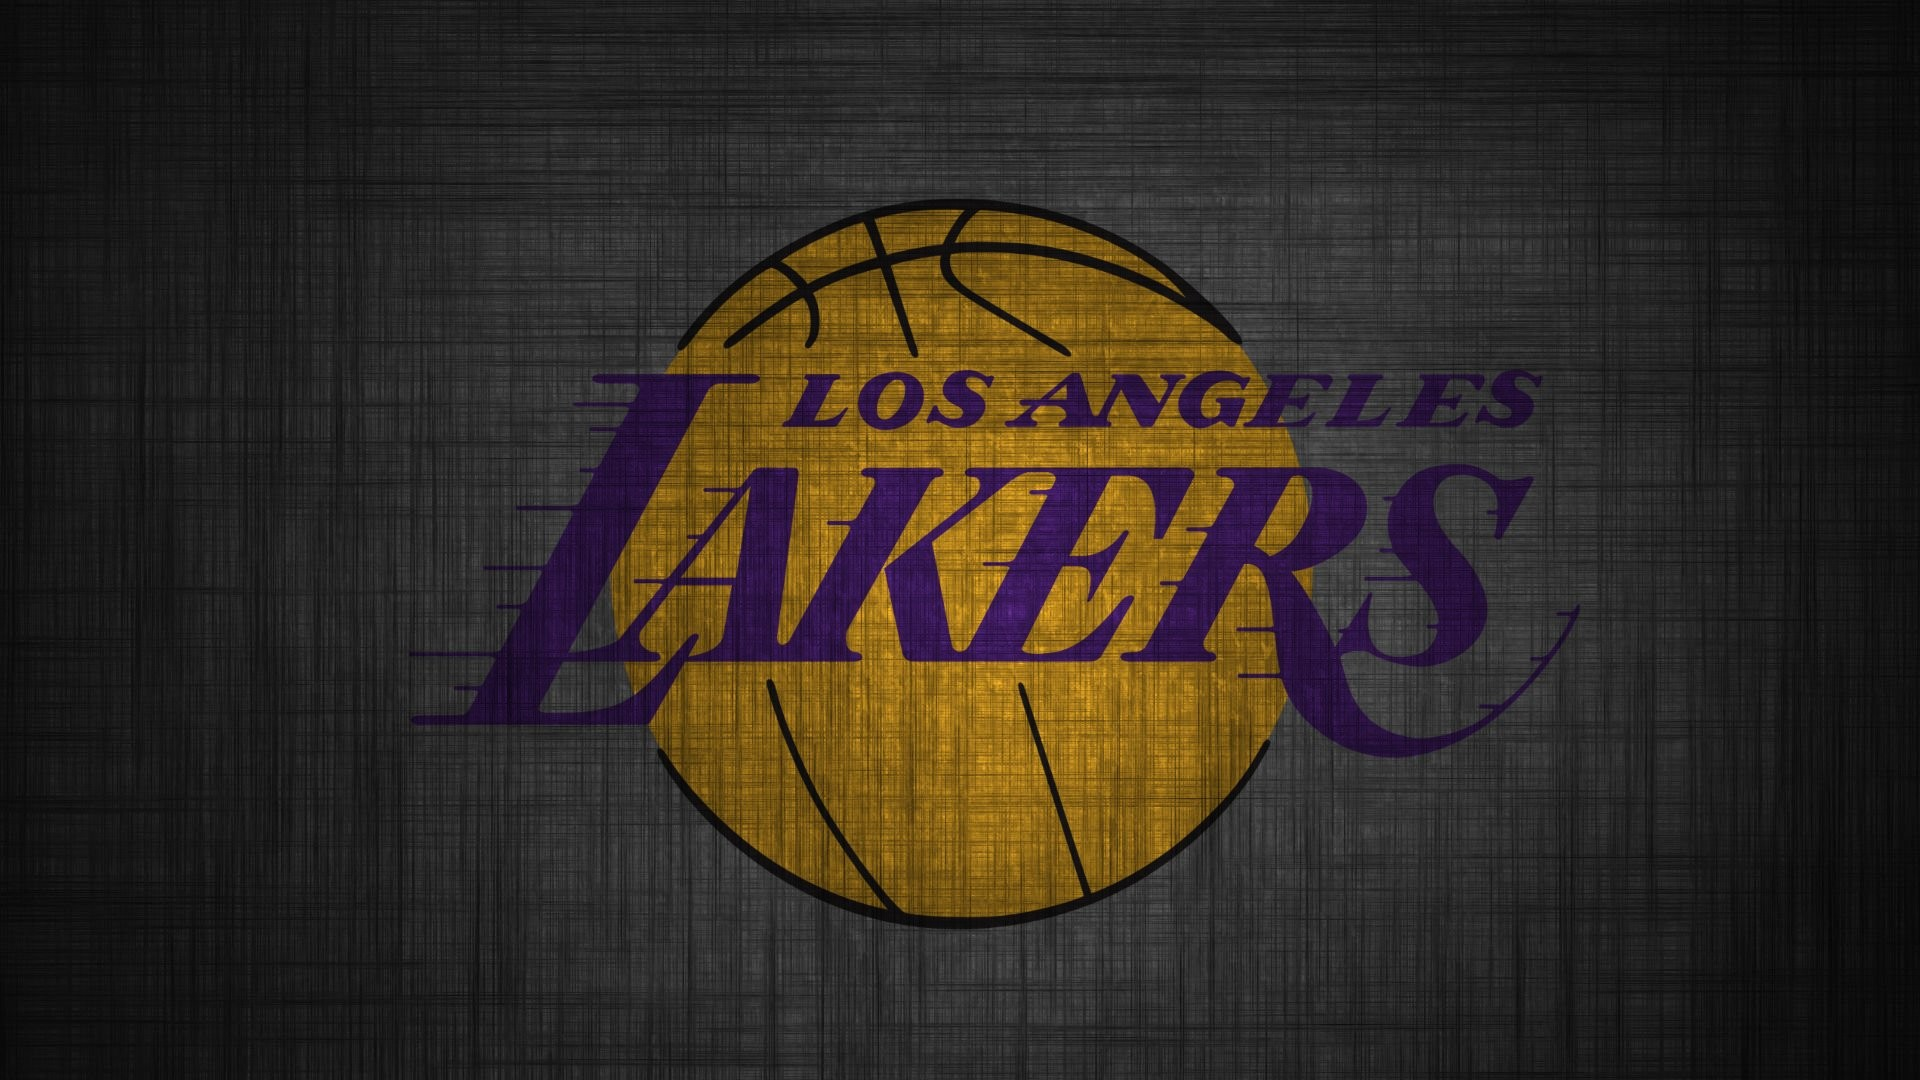 Lakers Wallpapers and Infographics Los Angeles Lakers 1500×500 Lakers  Wallpaper (43 Wallpapers)   Adorable Wallpapers   Desktop   Pinterest    Lakers …